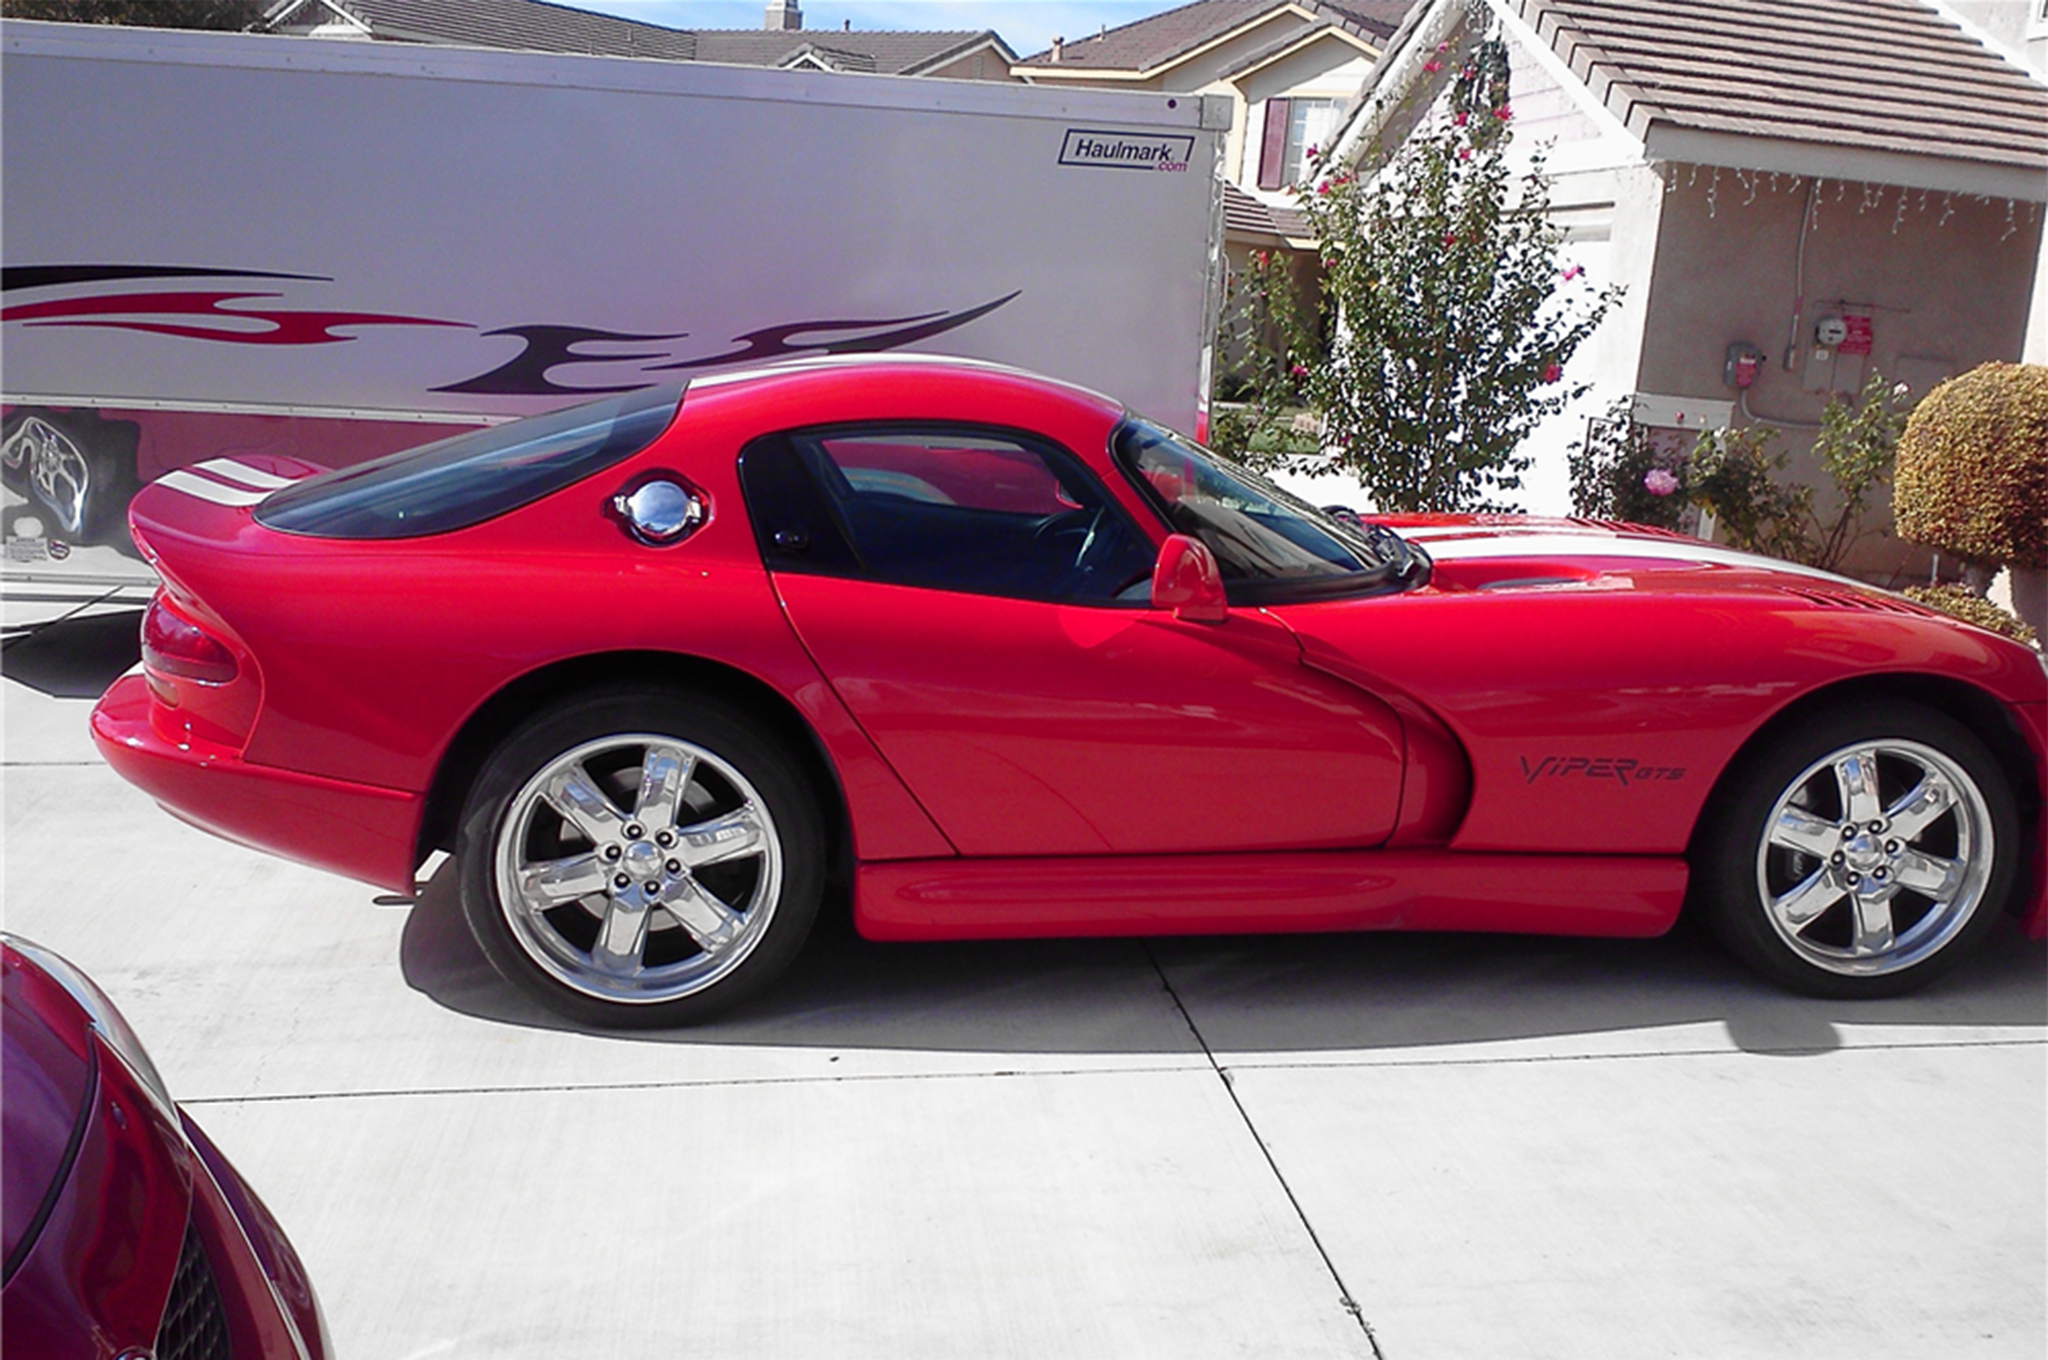 2002 Dodge Viper GTS Final Edition March Auctions Side